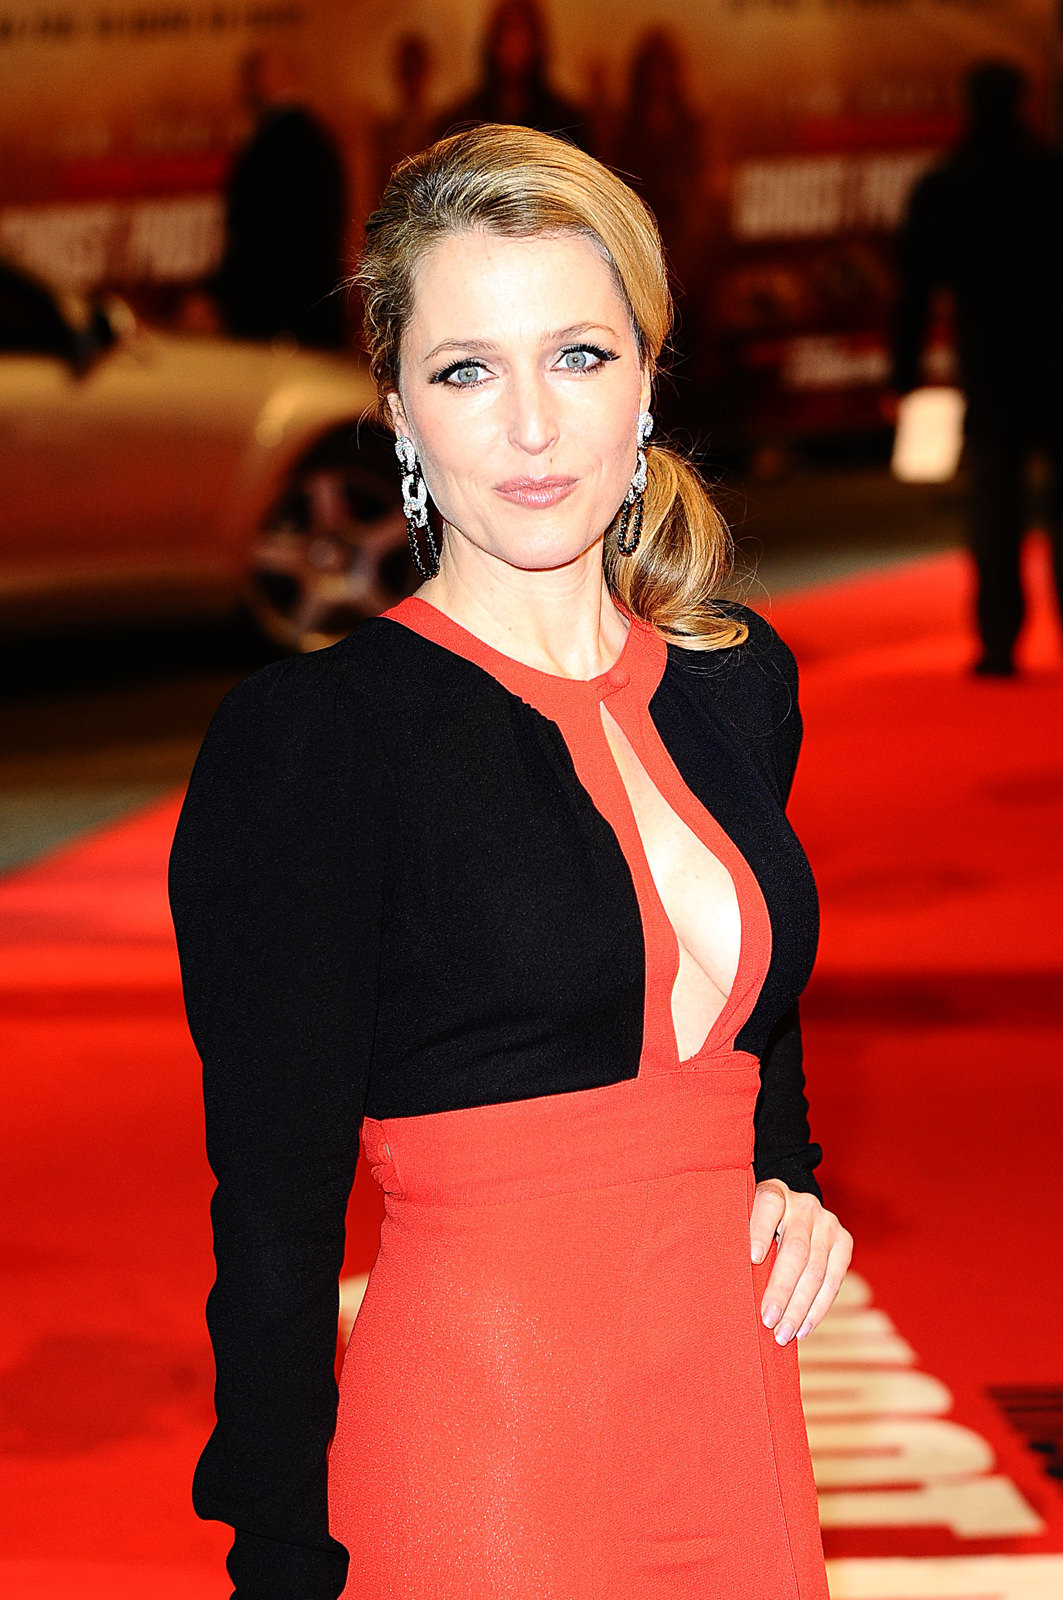 gillian anderson - photo #24